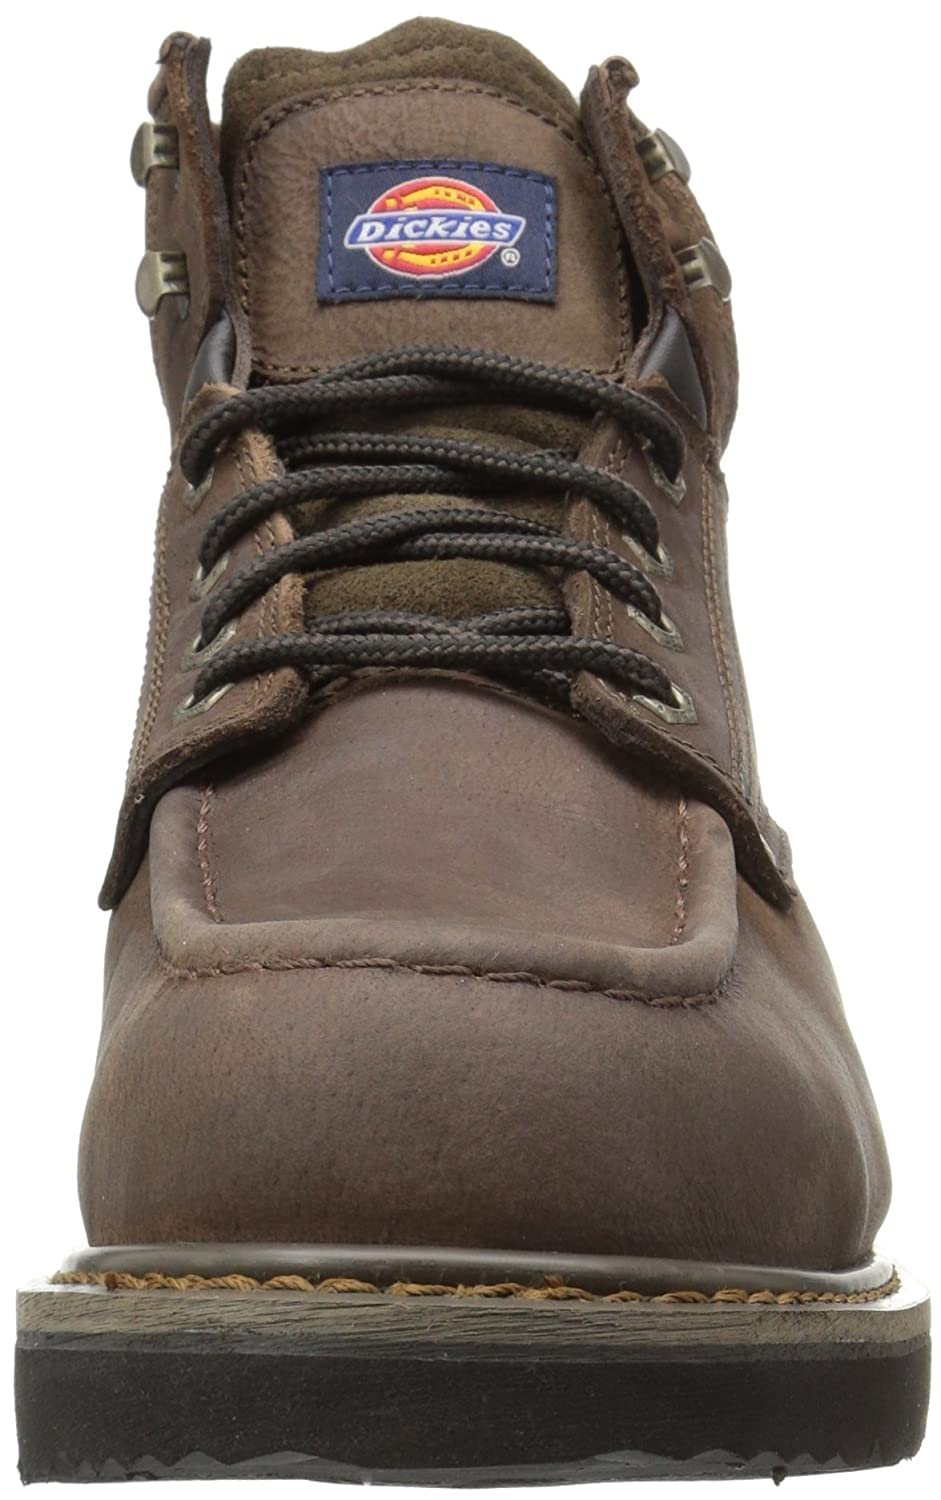 4782d92ab21 Dickies Men's Outpost Work Boot